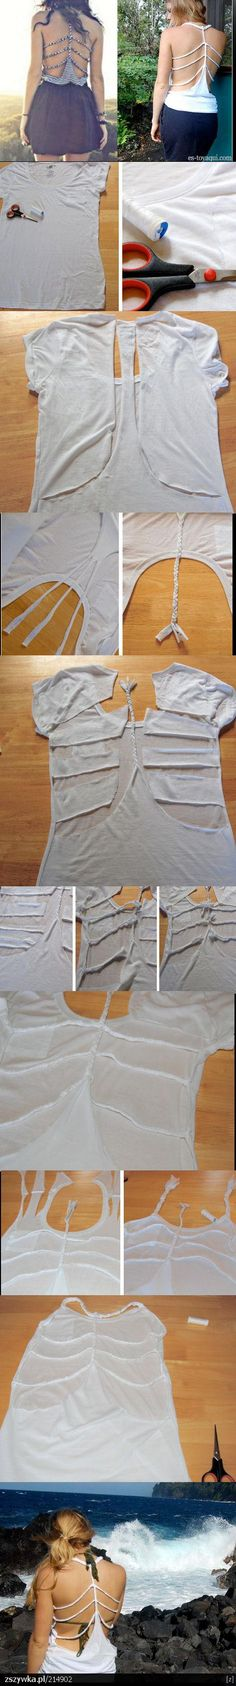 Easy to make. Do it yourself from home, you can purchase many diffrent stylish shirts from Chez Thrift and turn them into Open Back- Cut Up Shirts